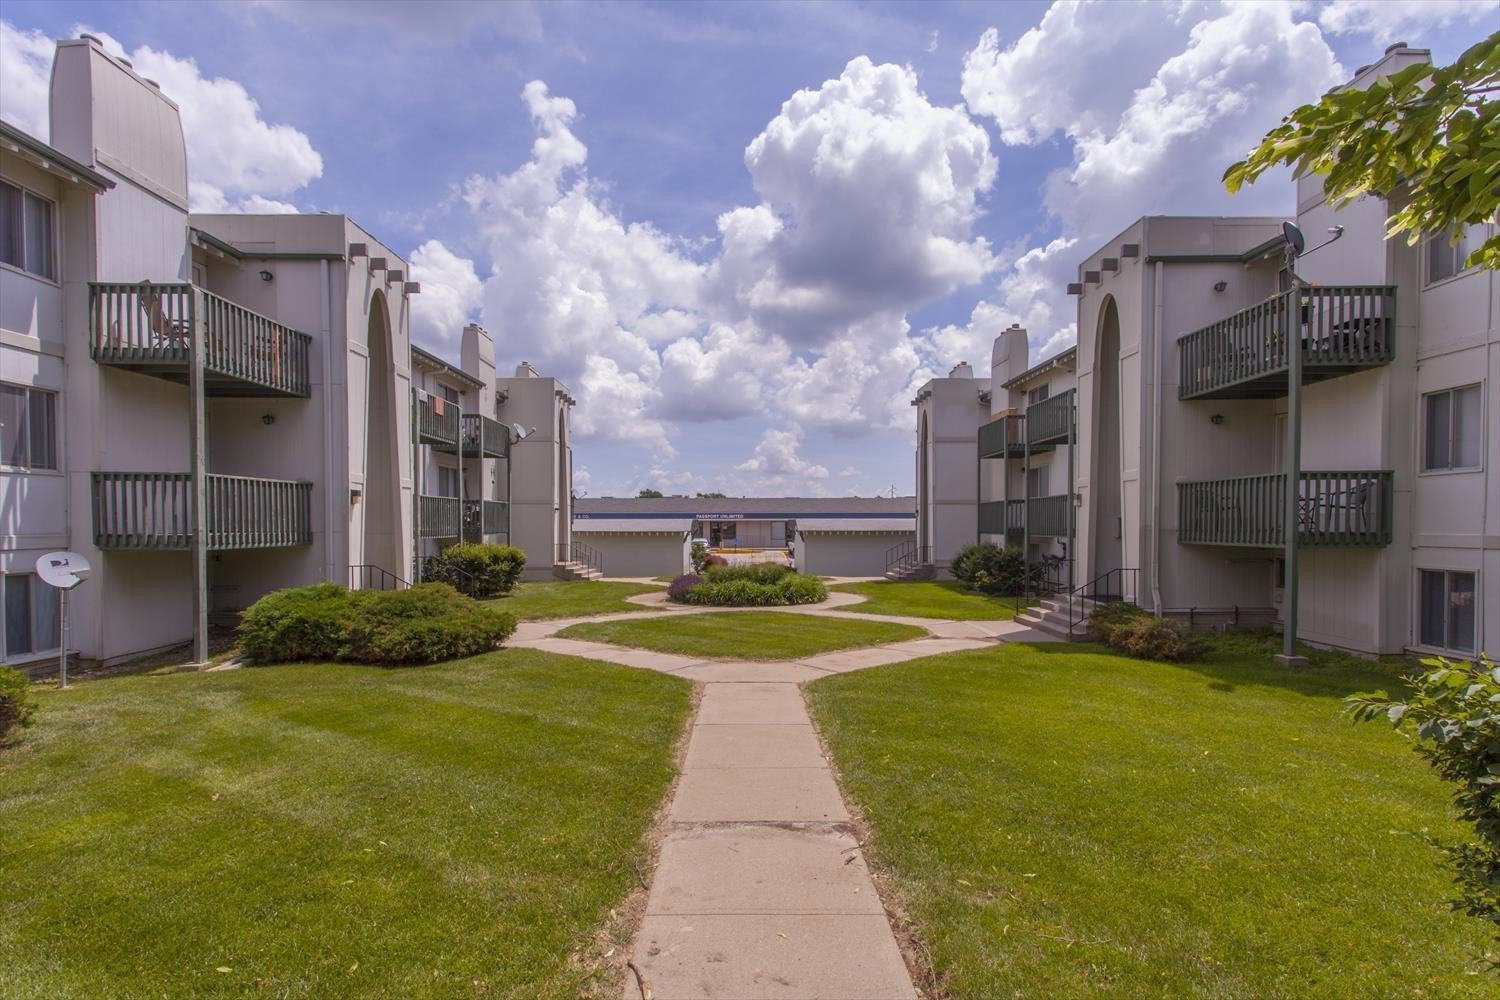 Best Camelot Village Studio 3 Bedroom Apartments In Omaha Ne With Pictures